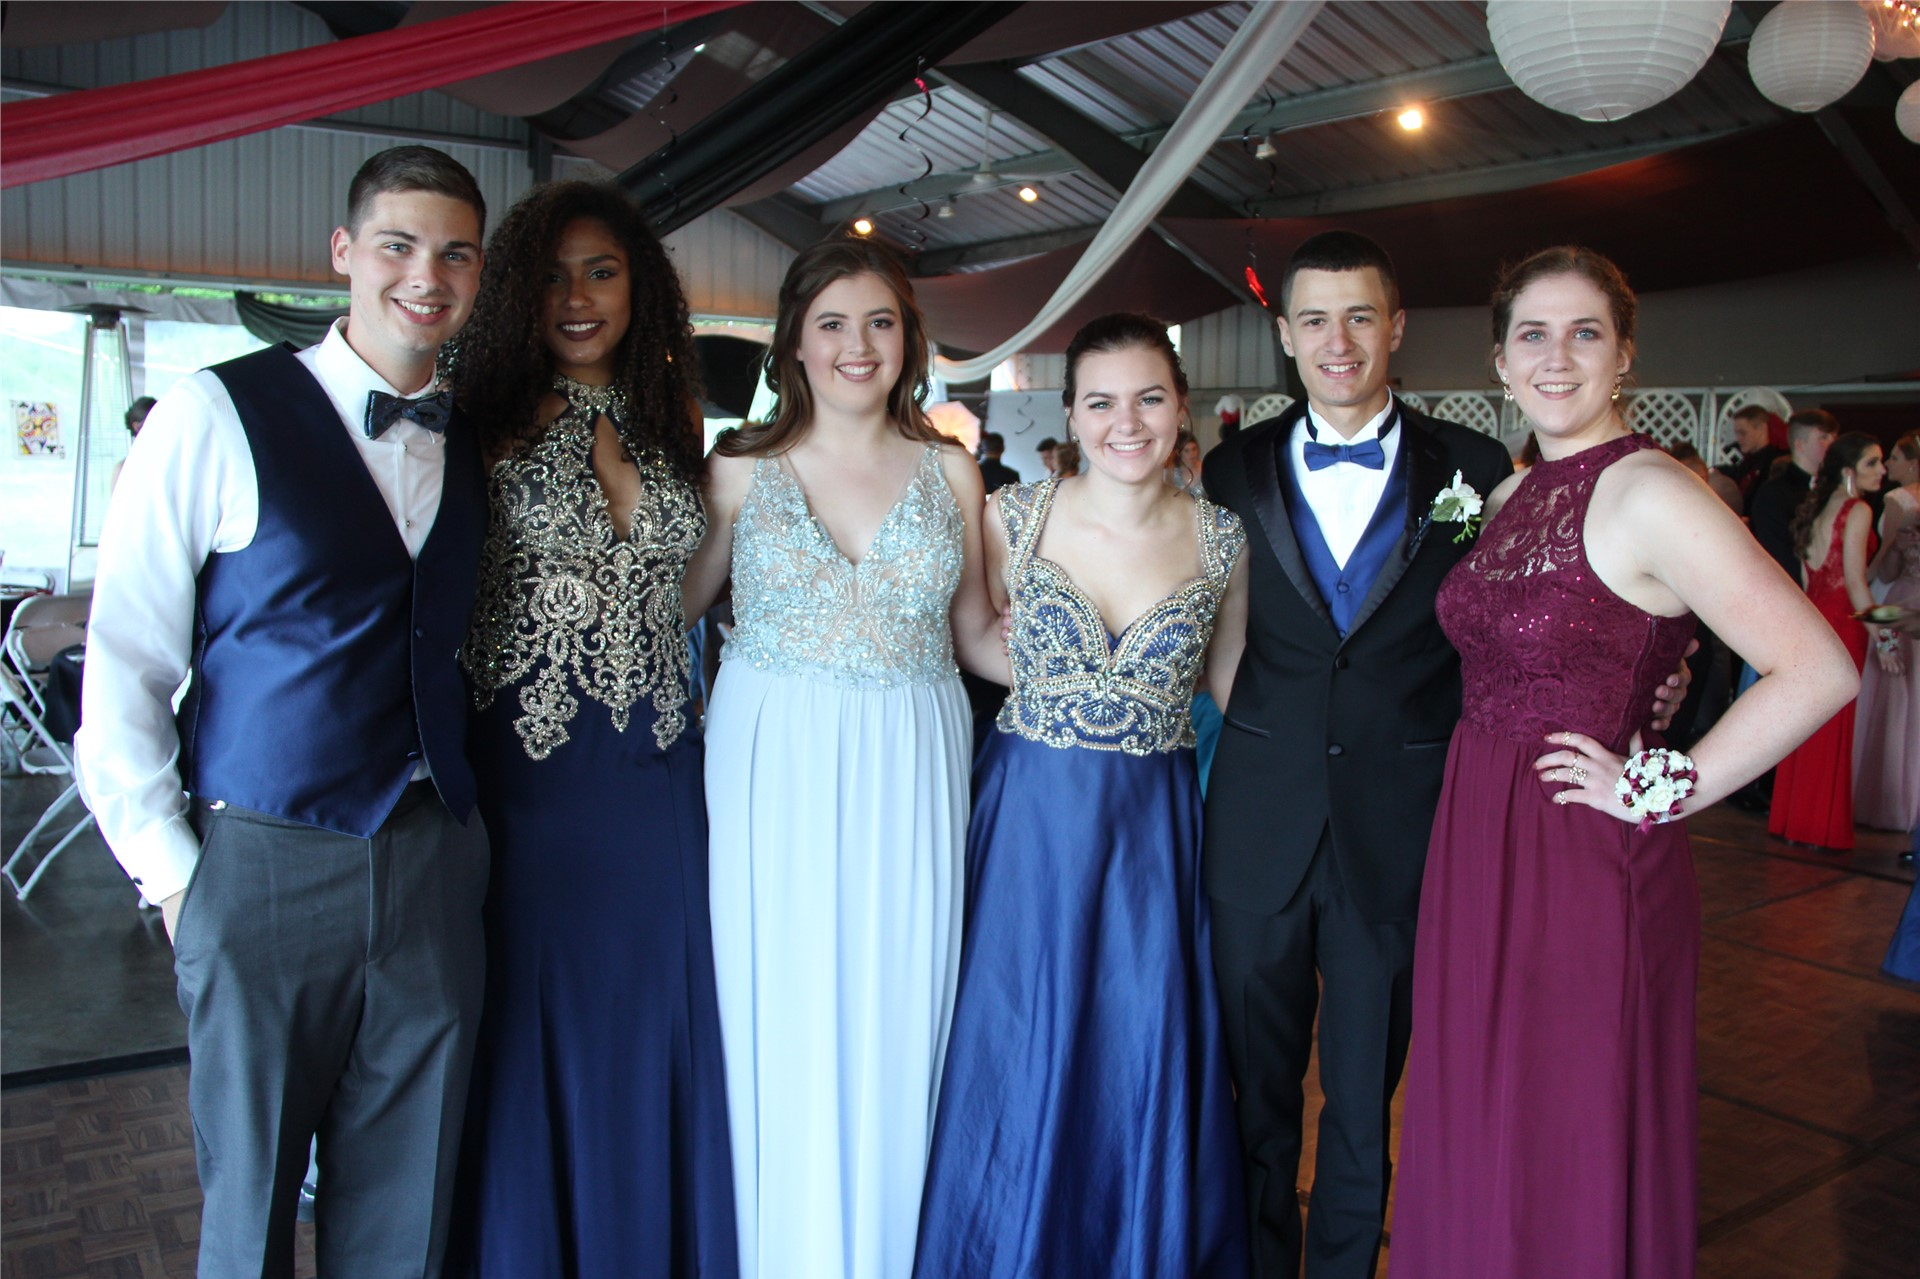 group of six students pose for a photo inside of prom event